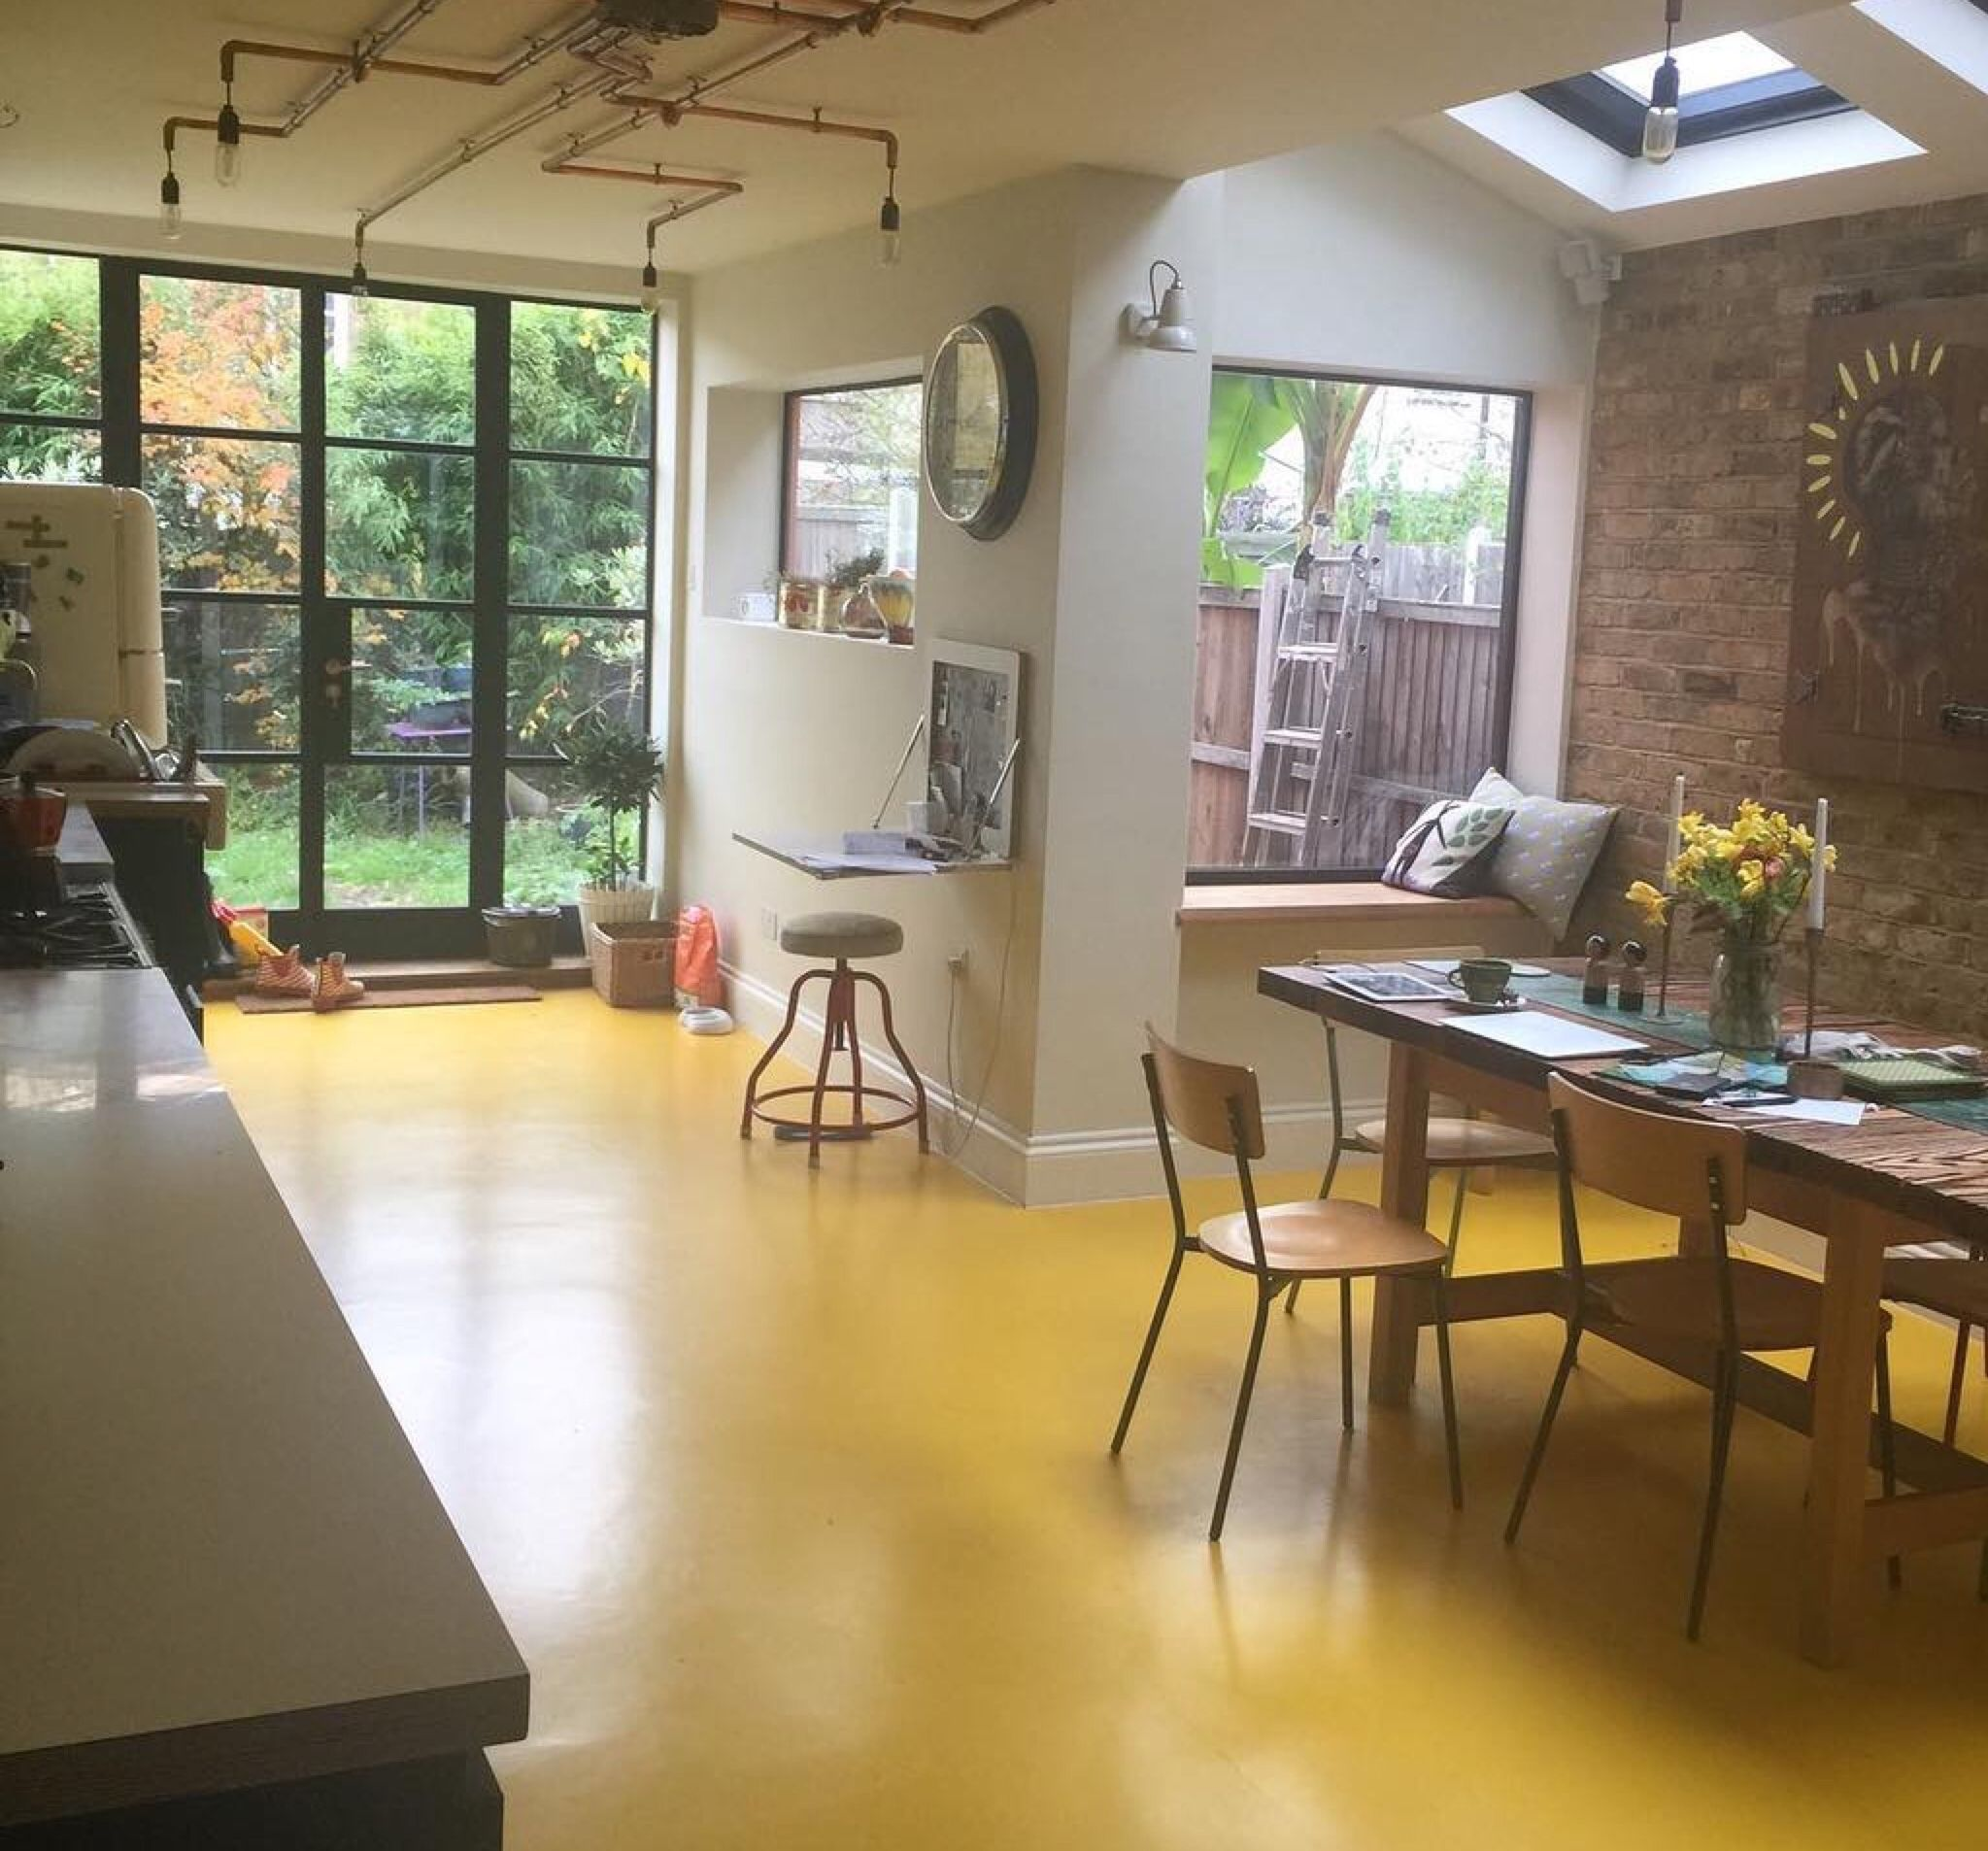 Springfield Yellow Rubber Looking Great In This Amazing Kitchen